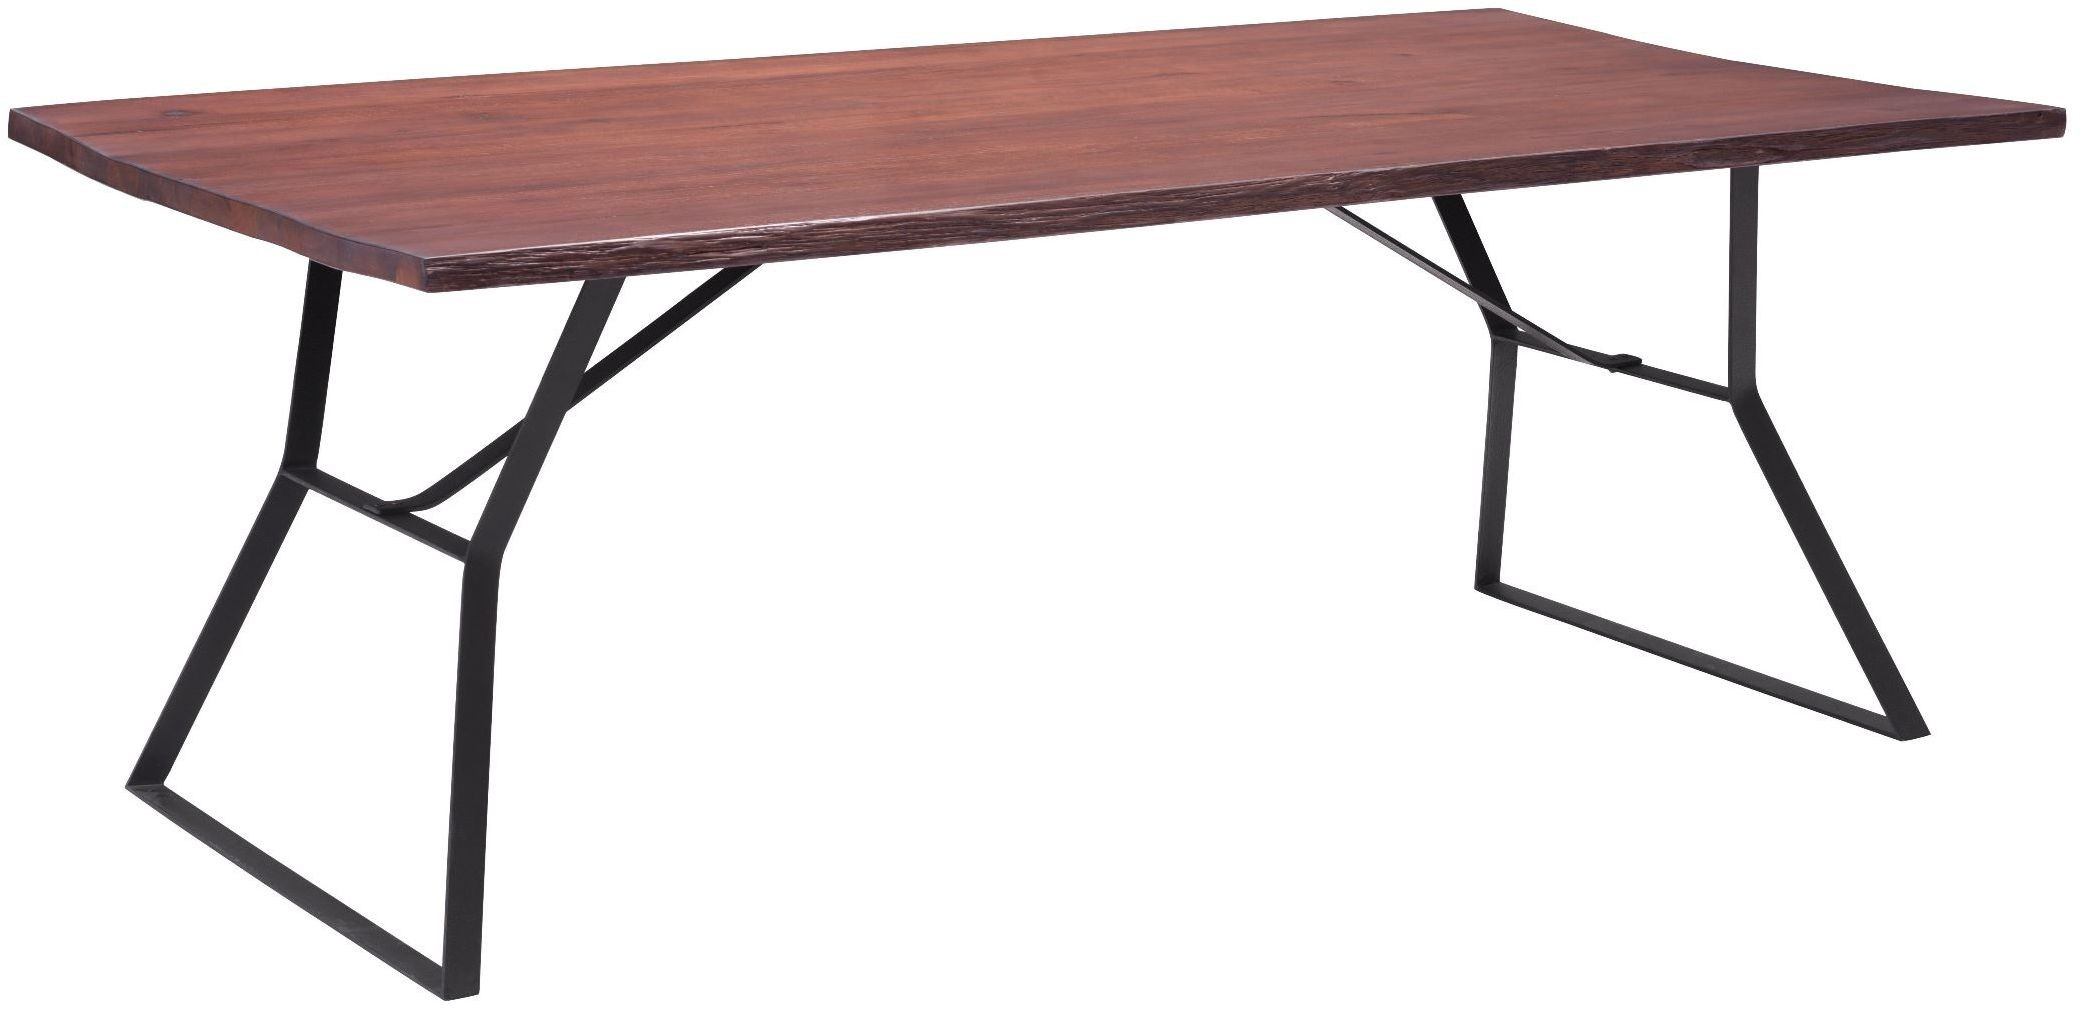 Omaha distressed cherry oak dining table from zuo for Cherry dining table